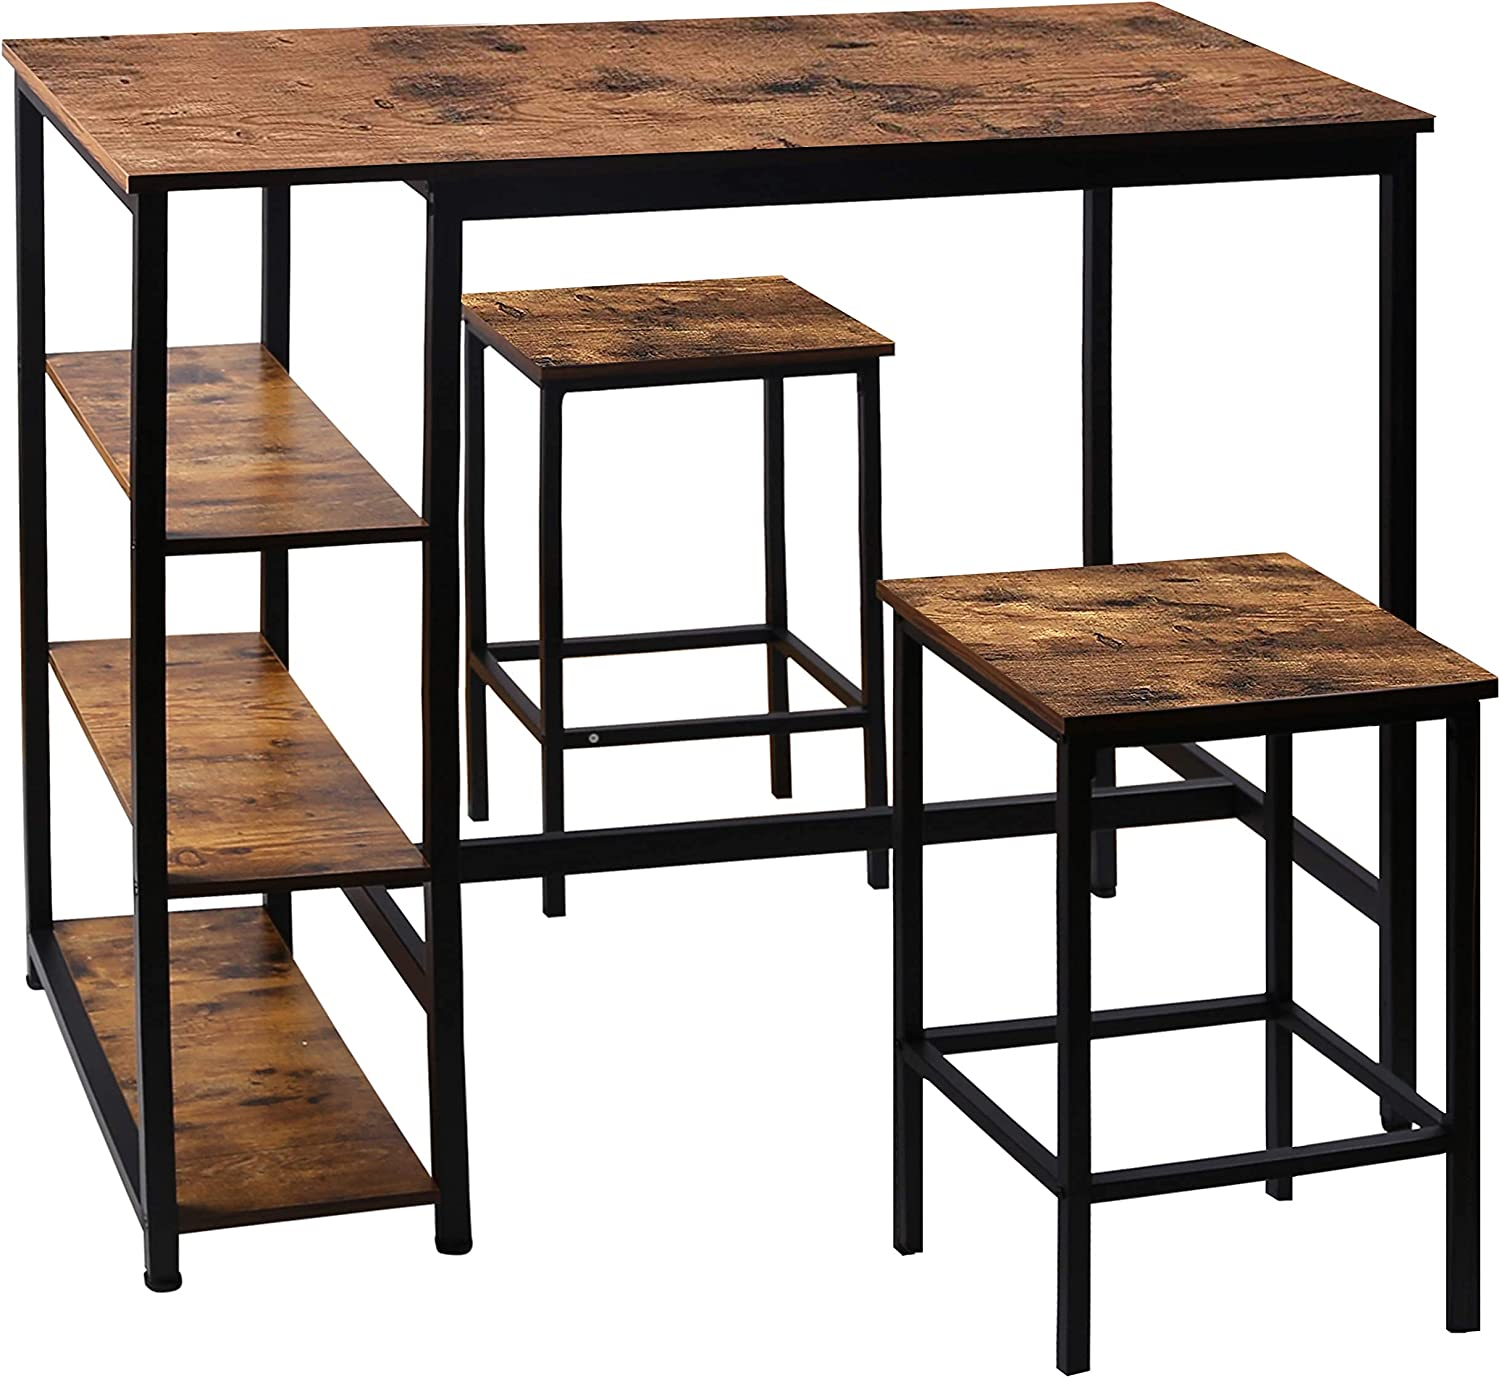 VEIKOUS Elegant Ranking TOP19 Dining Table Set with Shelves Open 3 Storage Industrial